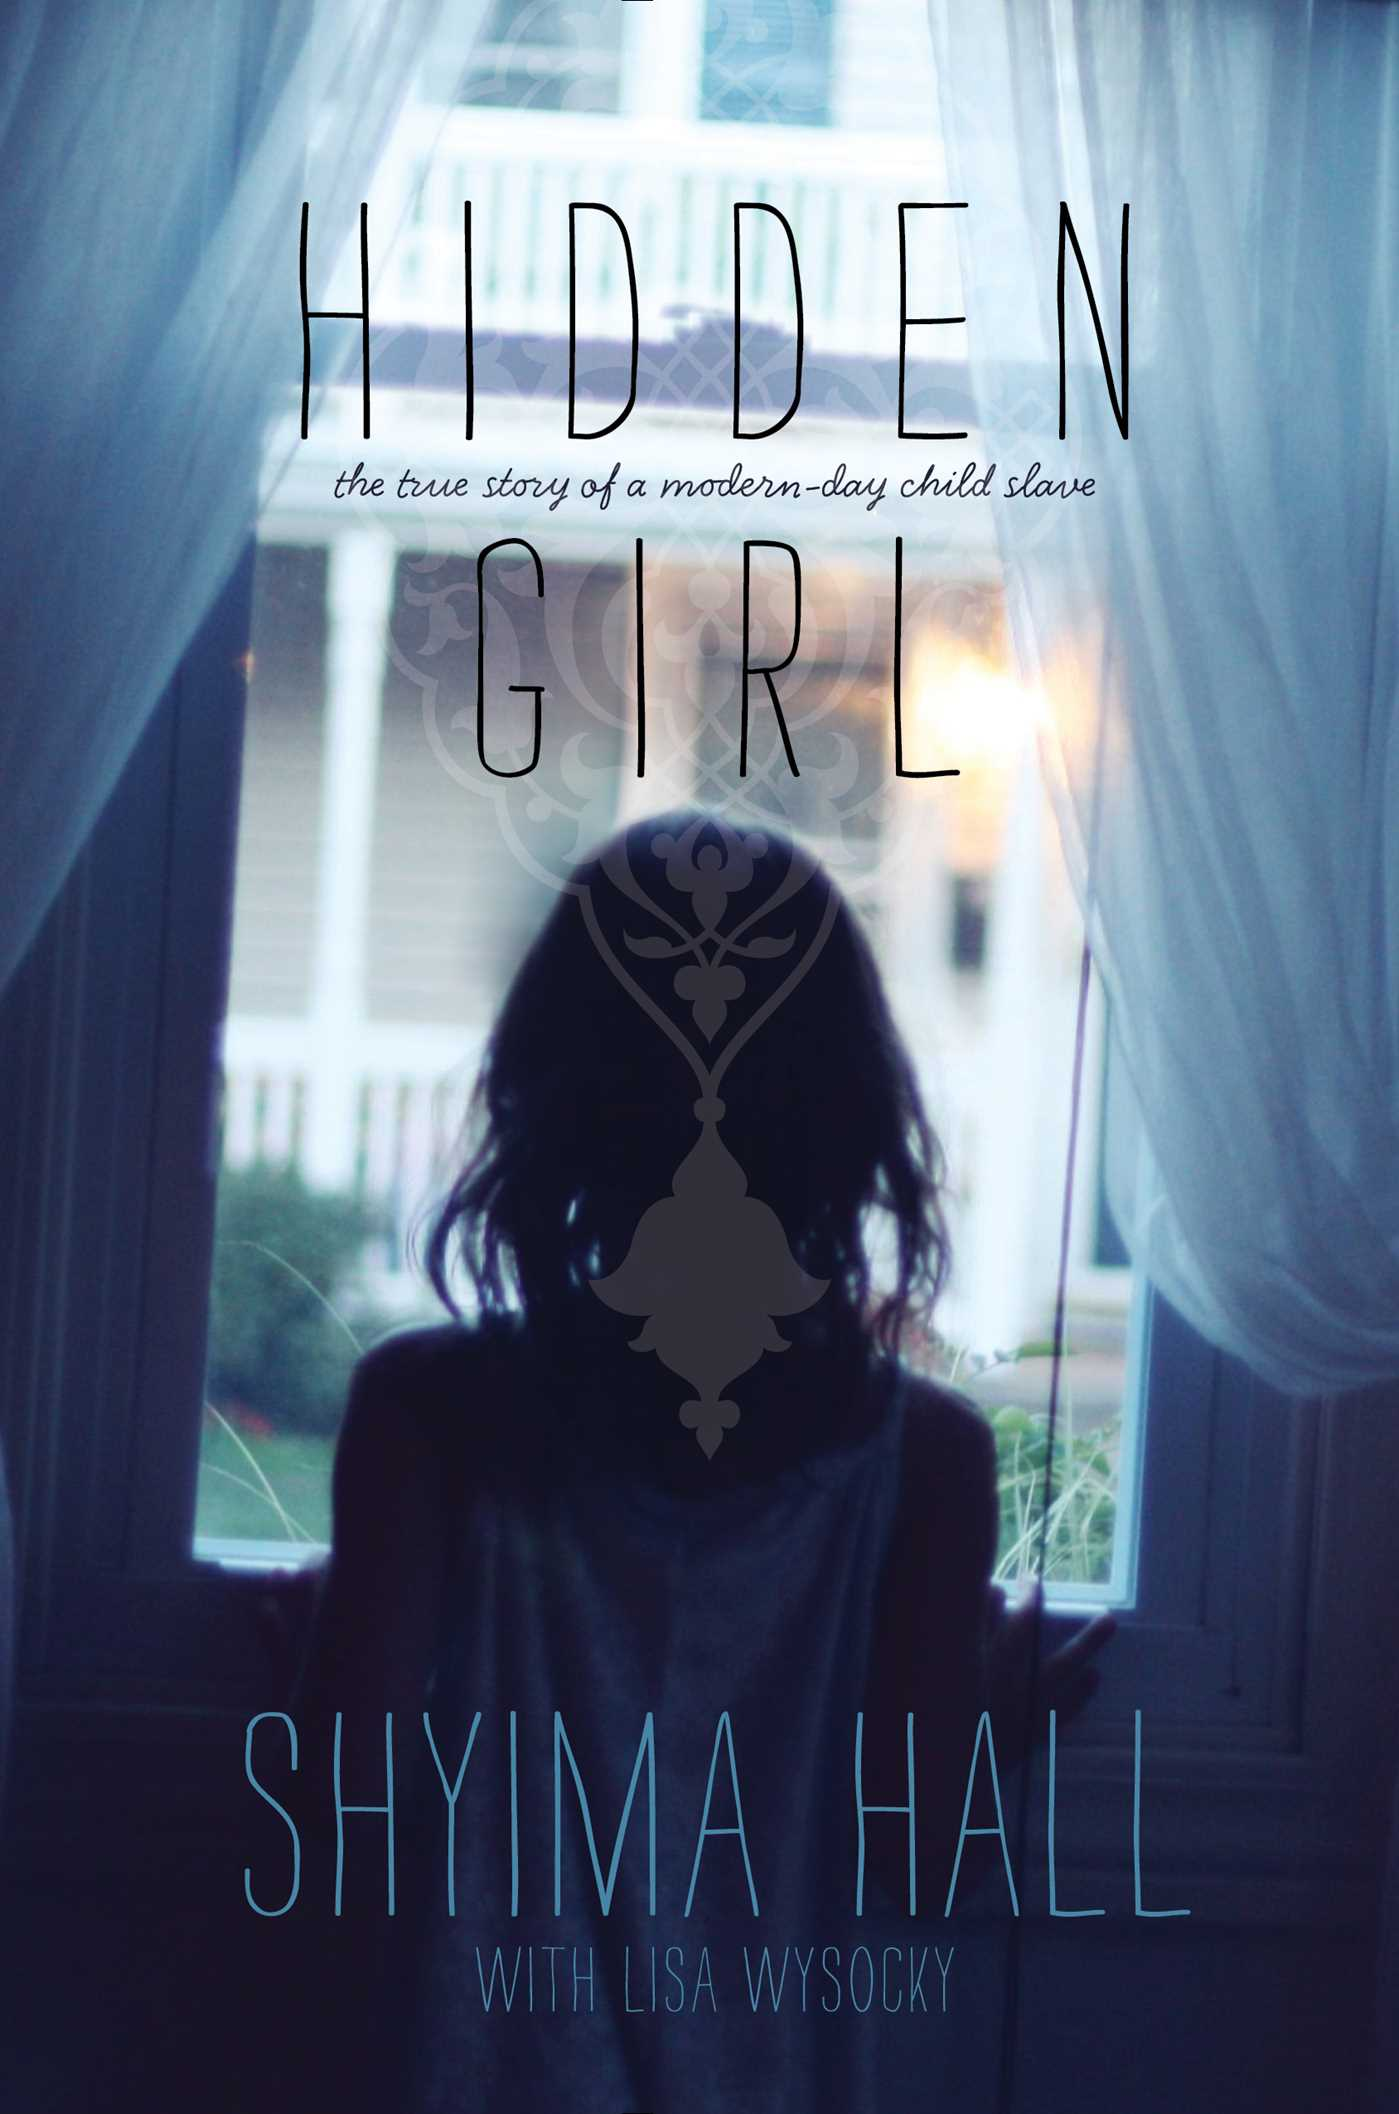 Hidden girl ebook by shyima hall lisa wysocky official the true story of a modern day child slave fandeluxe PDF